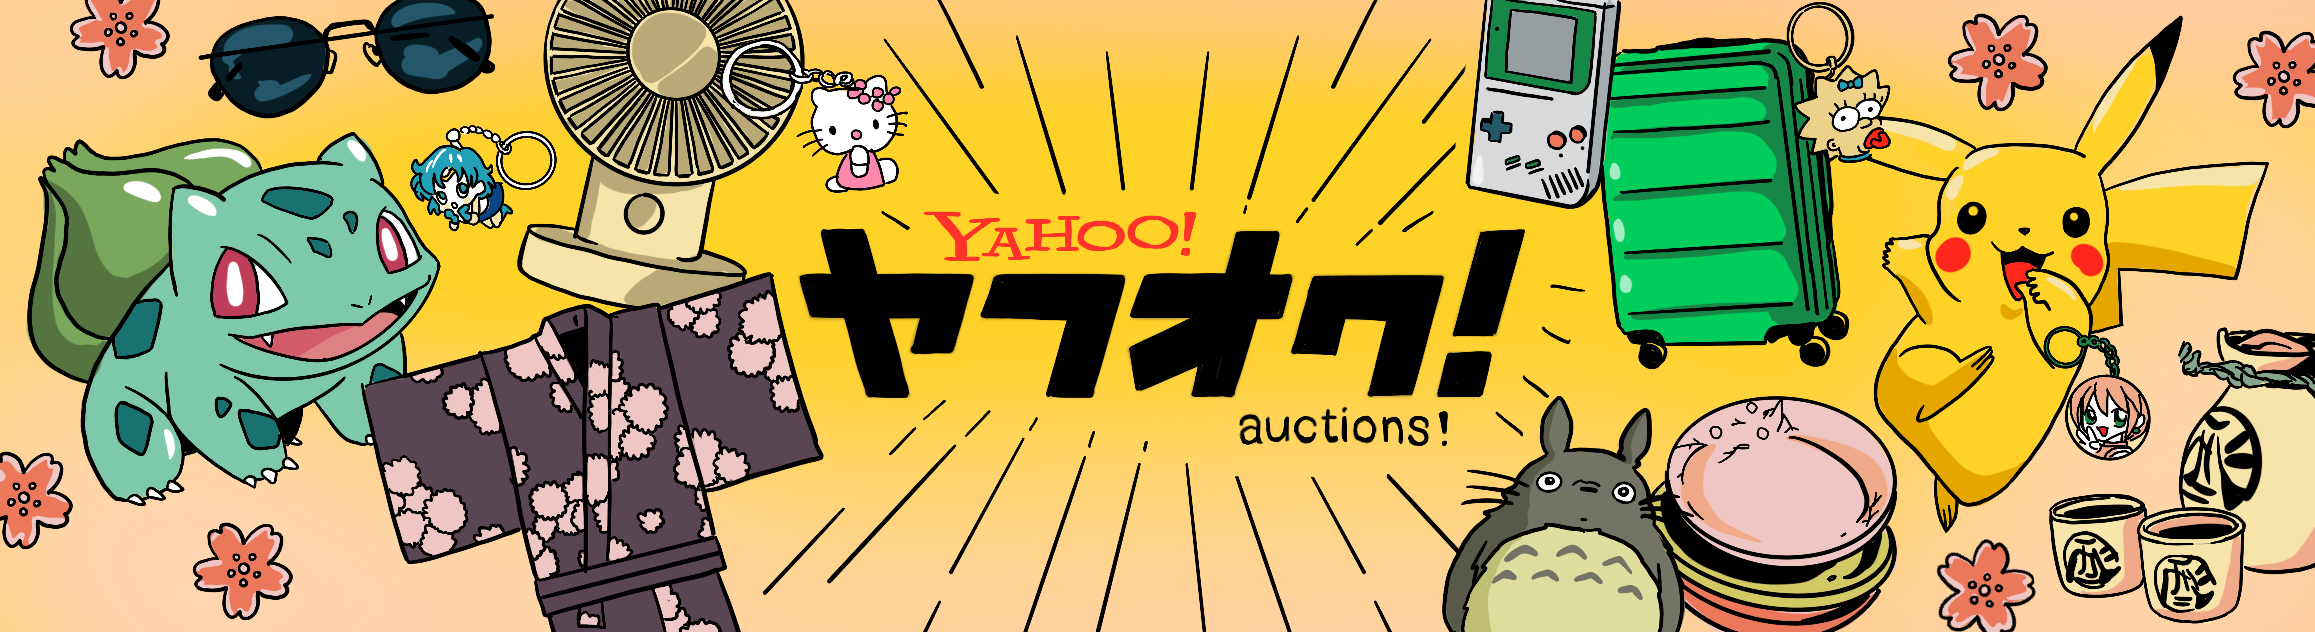 Auction yahoo jp Mail Order